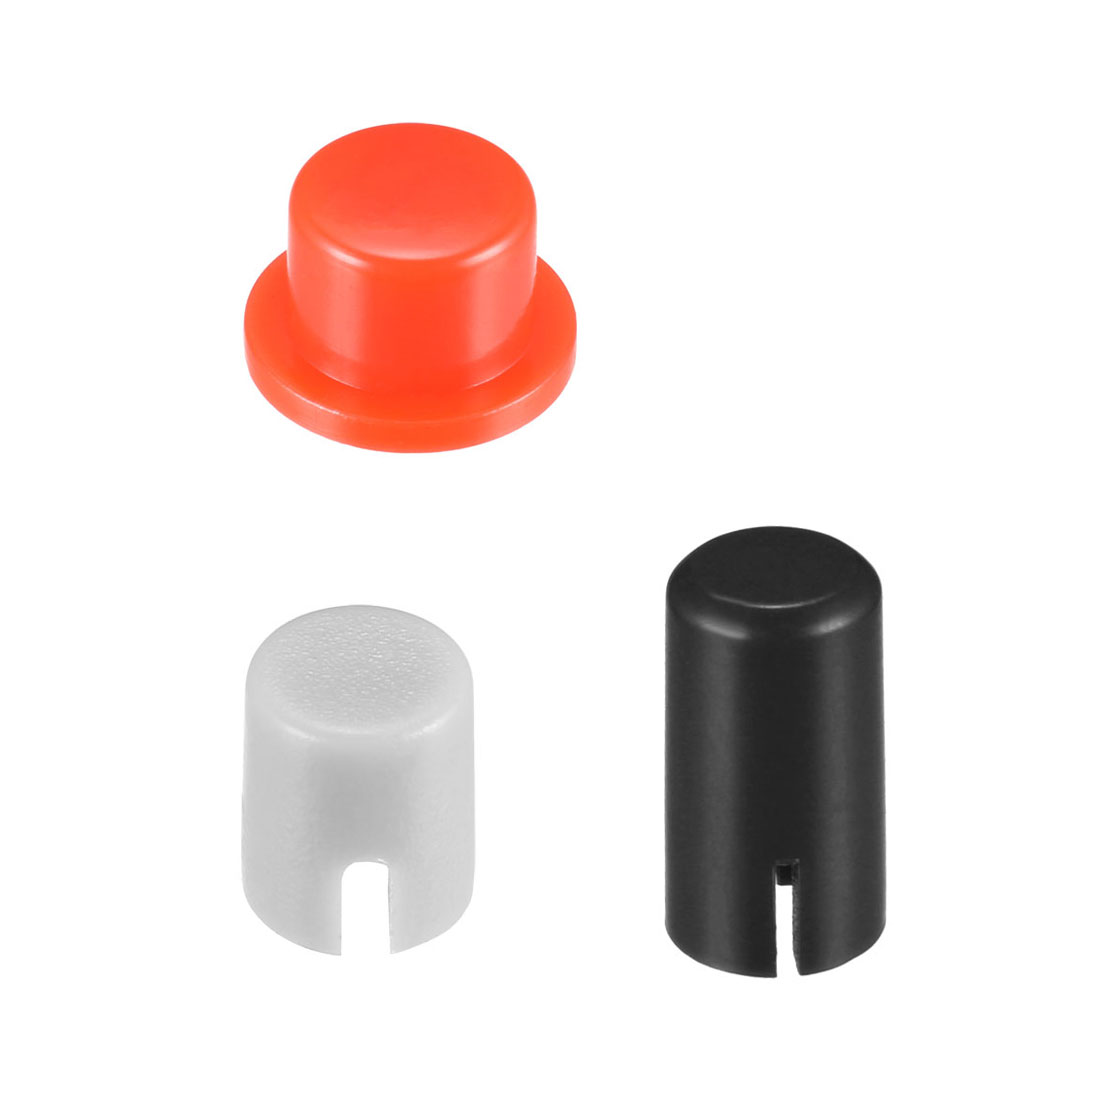 Uxcell 50Pcs Switch Caps Plastic 4.6x5.5/5x9mm Latching Pushbutton Tactile Cover Keycaps Protector For 6x6x7.3mm Tact Switch